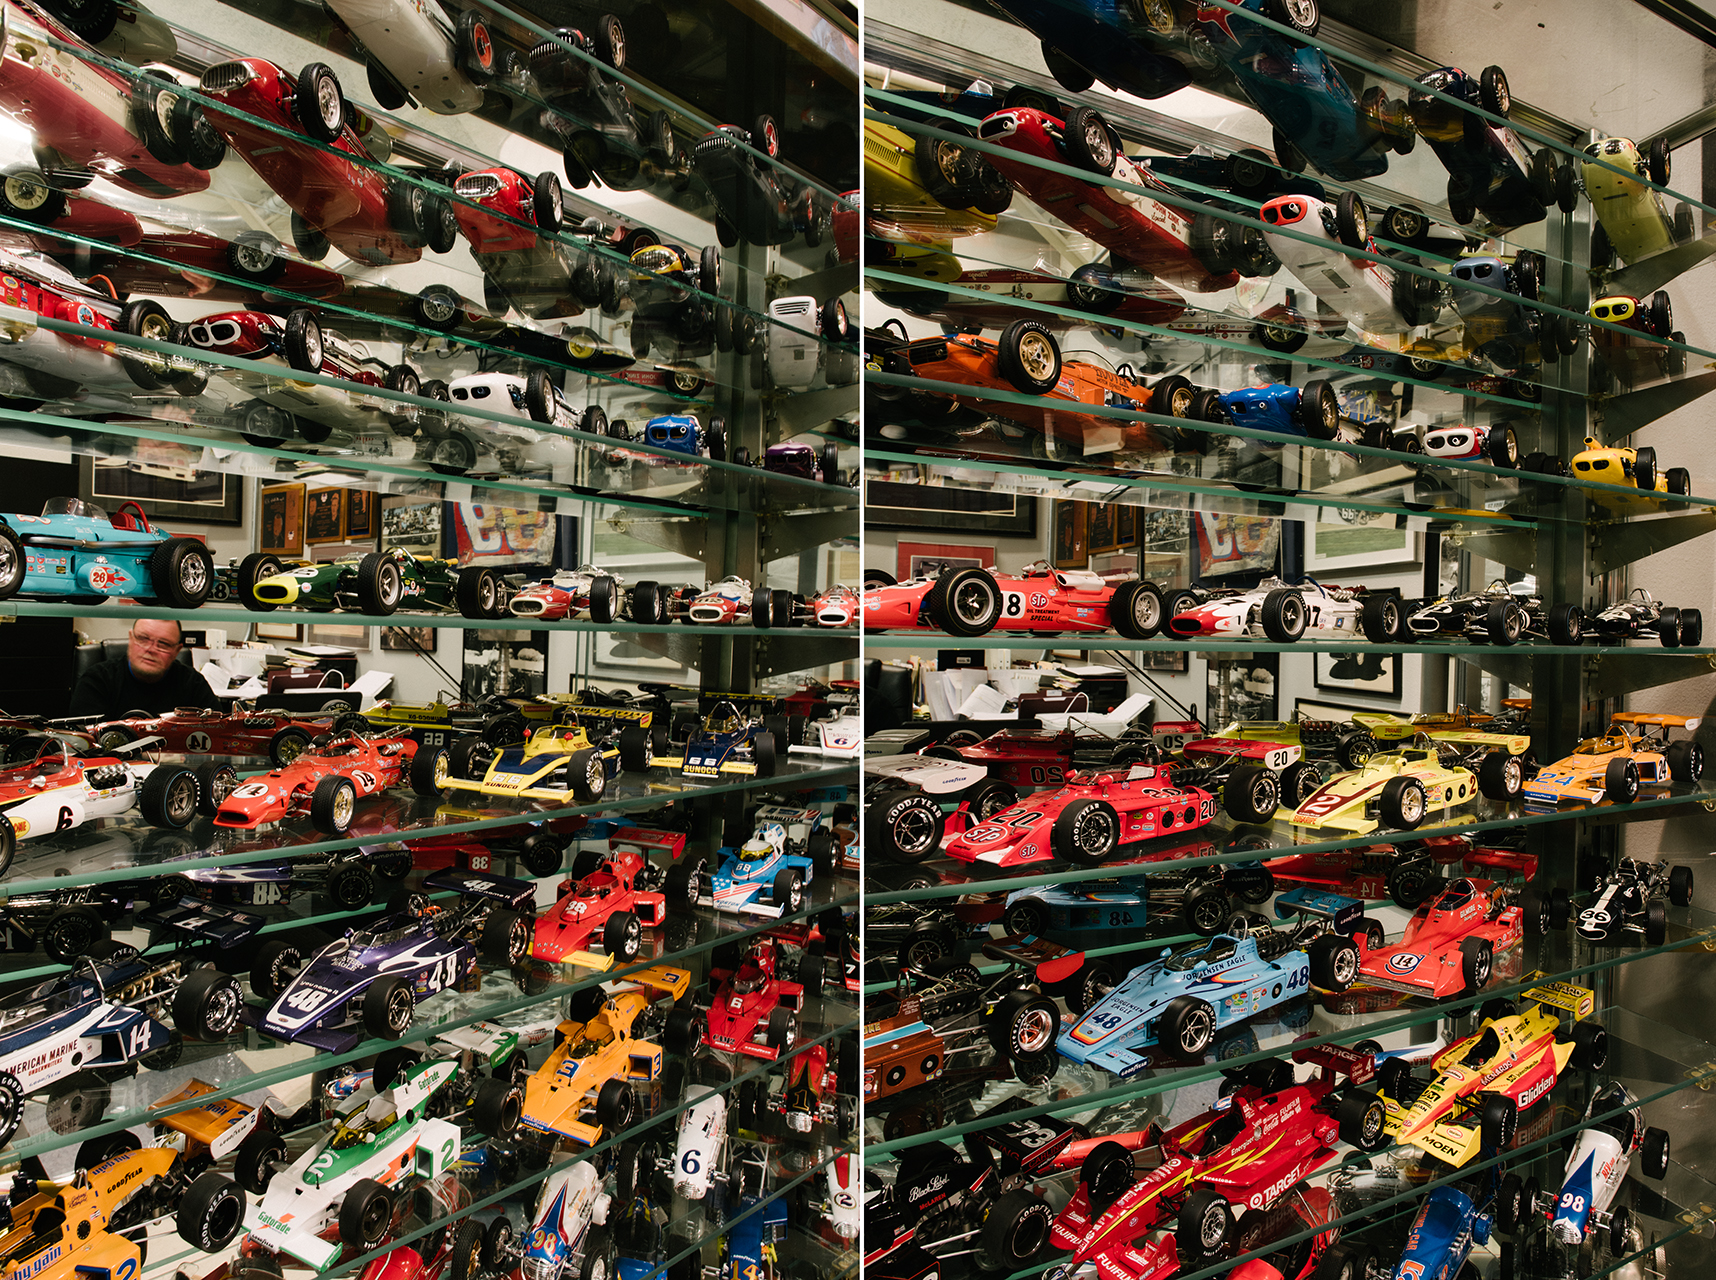 A display of 100-plus Indy car die casts line a wall.